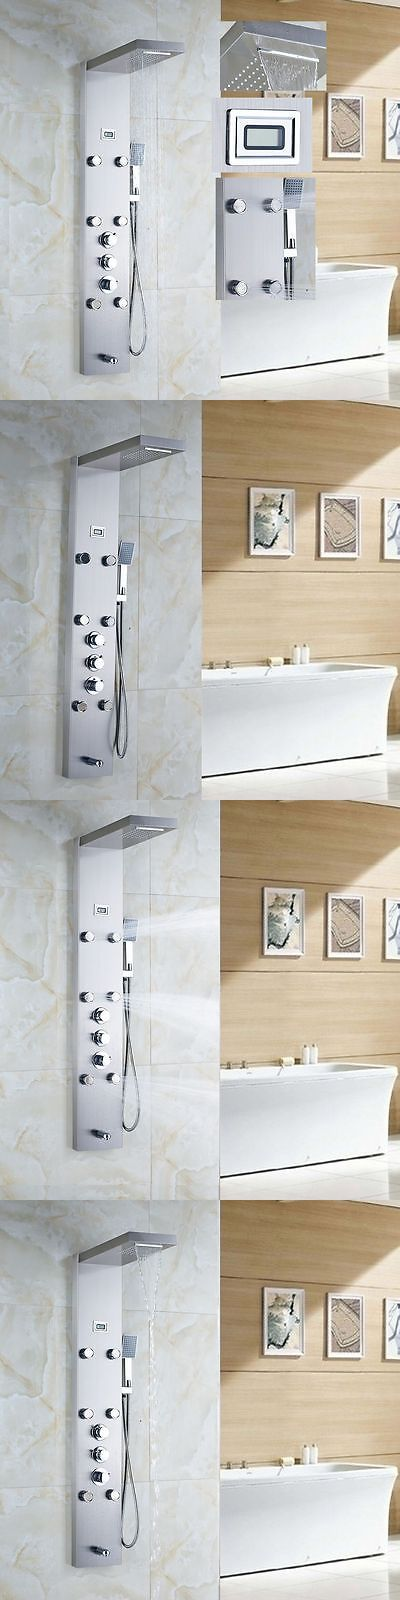 Massagers: Thermostatic Waterfall Rain Shower Panel Massage Jets Tub Spout Hand Shower Tap -> BUY IT NOW ONLY: $175 on eBay!